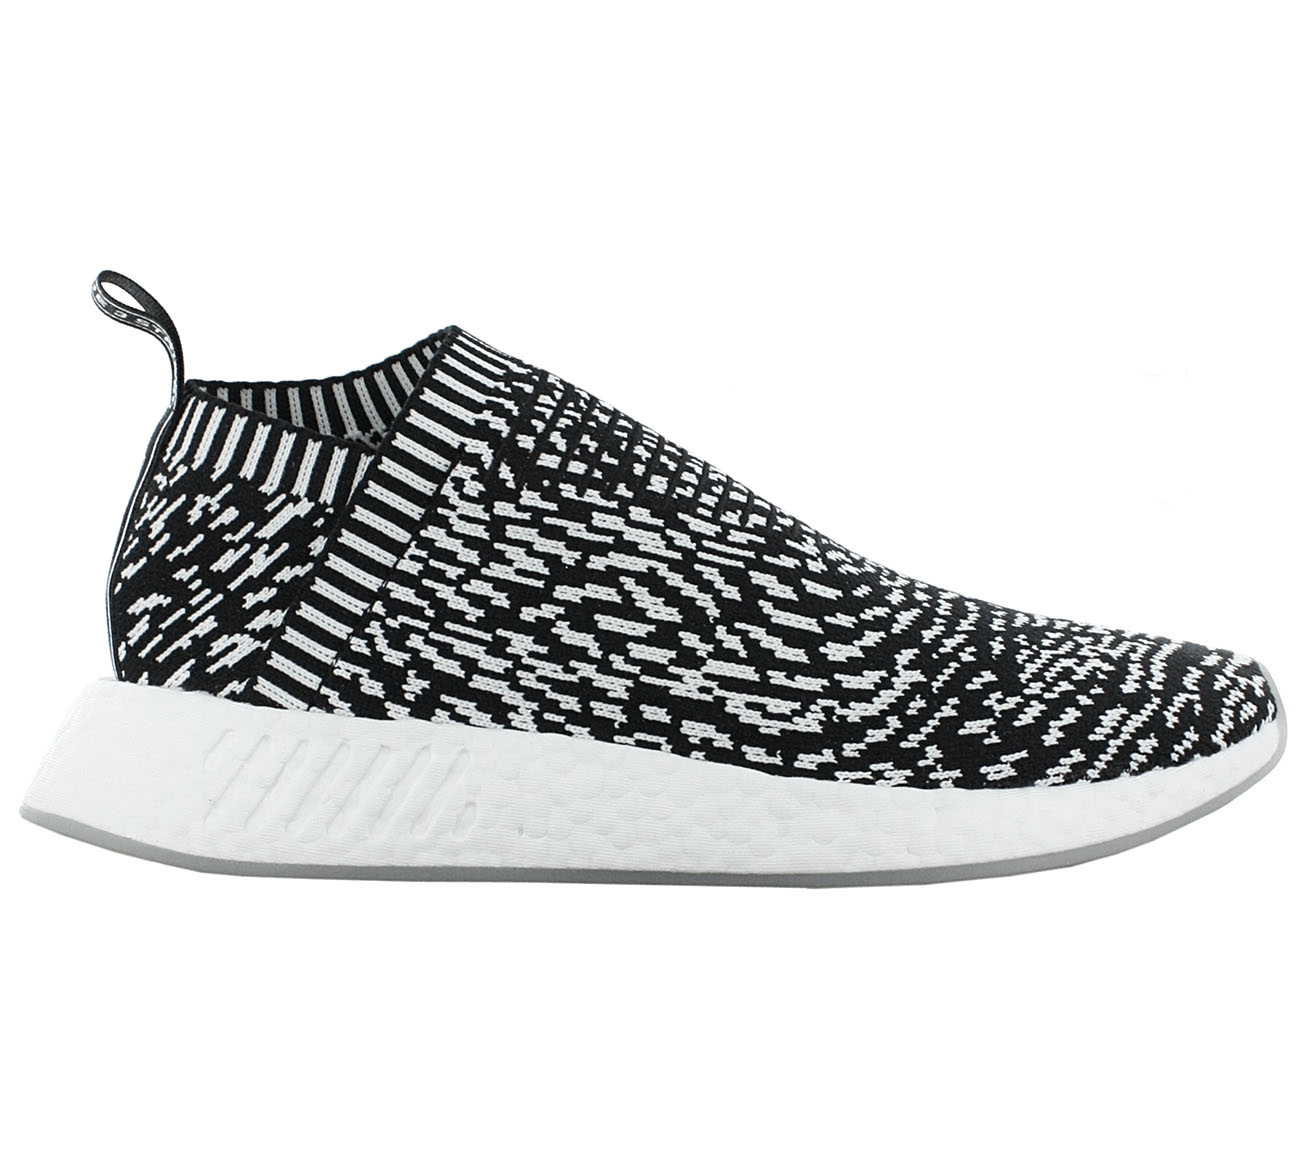 best service 67508 7a4d9 Adidas NMD CS2 PK Primeknit boost scarpe sneakers uomo Bianco Nero NUOVO  by3012 - tualu.org